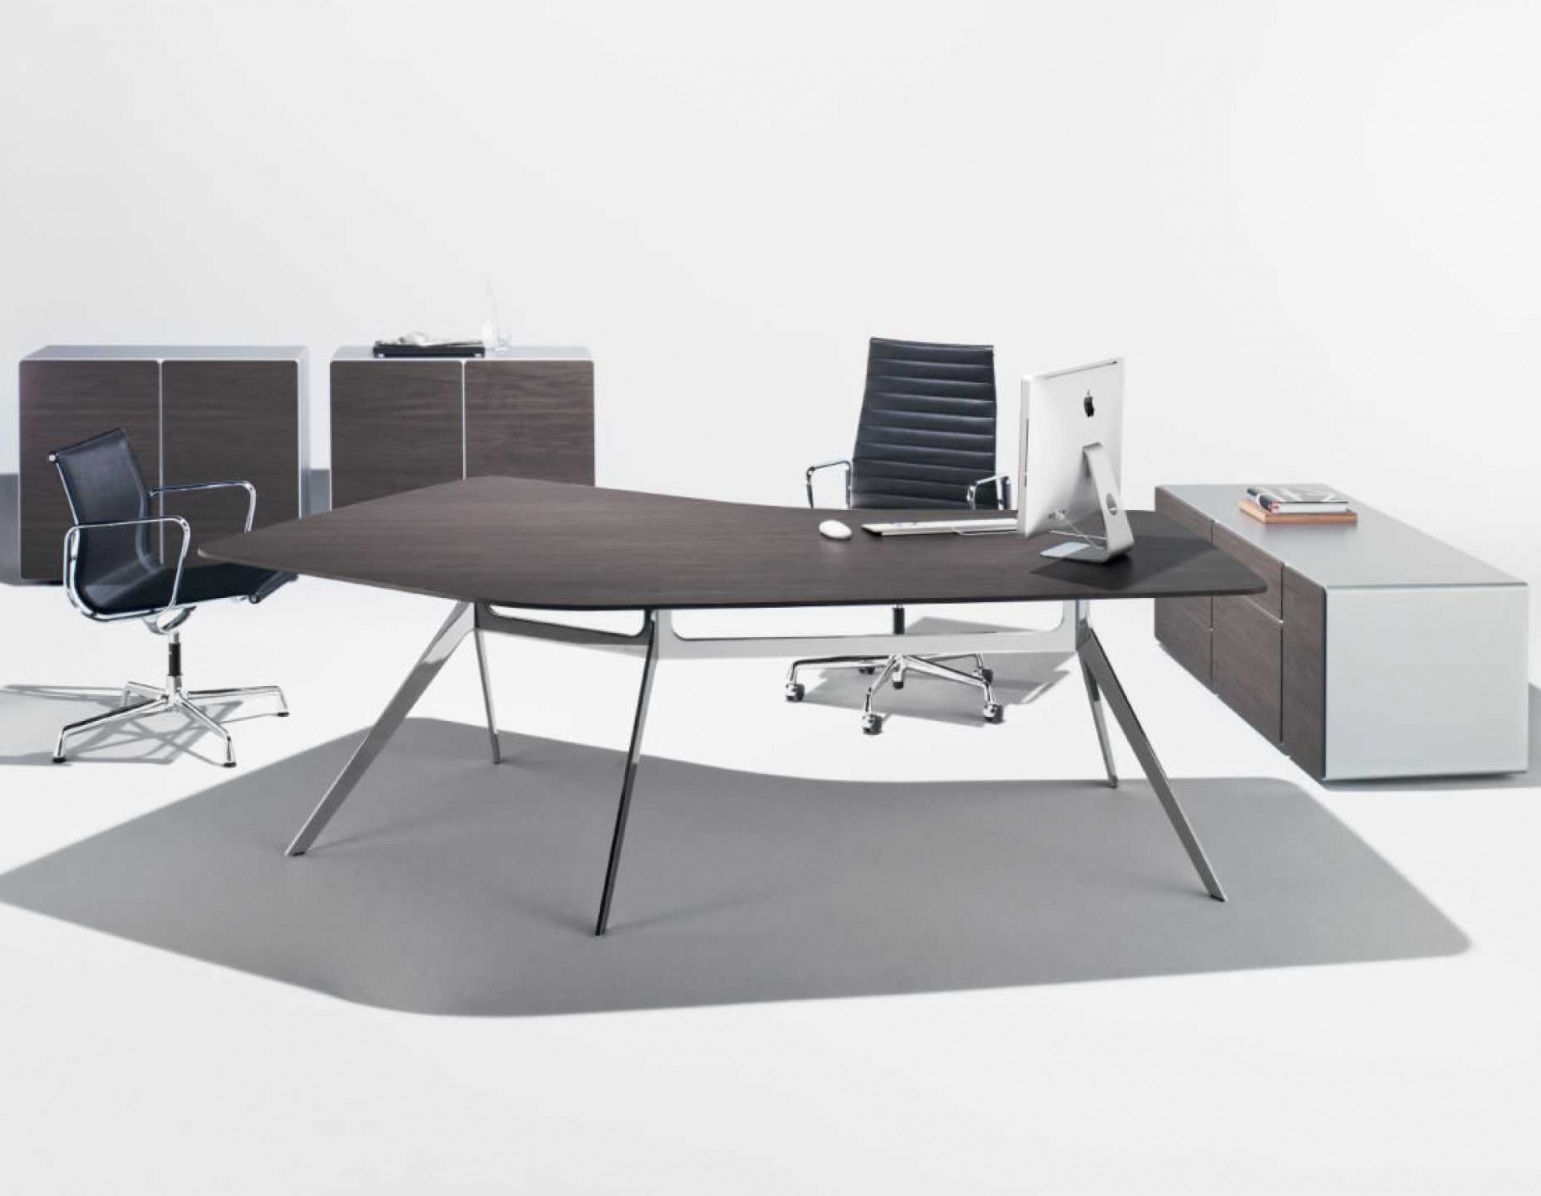 Pin By Erlangfahresi On Desk Office Design Contemporary